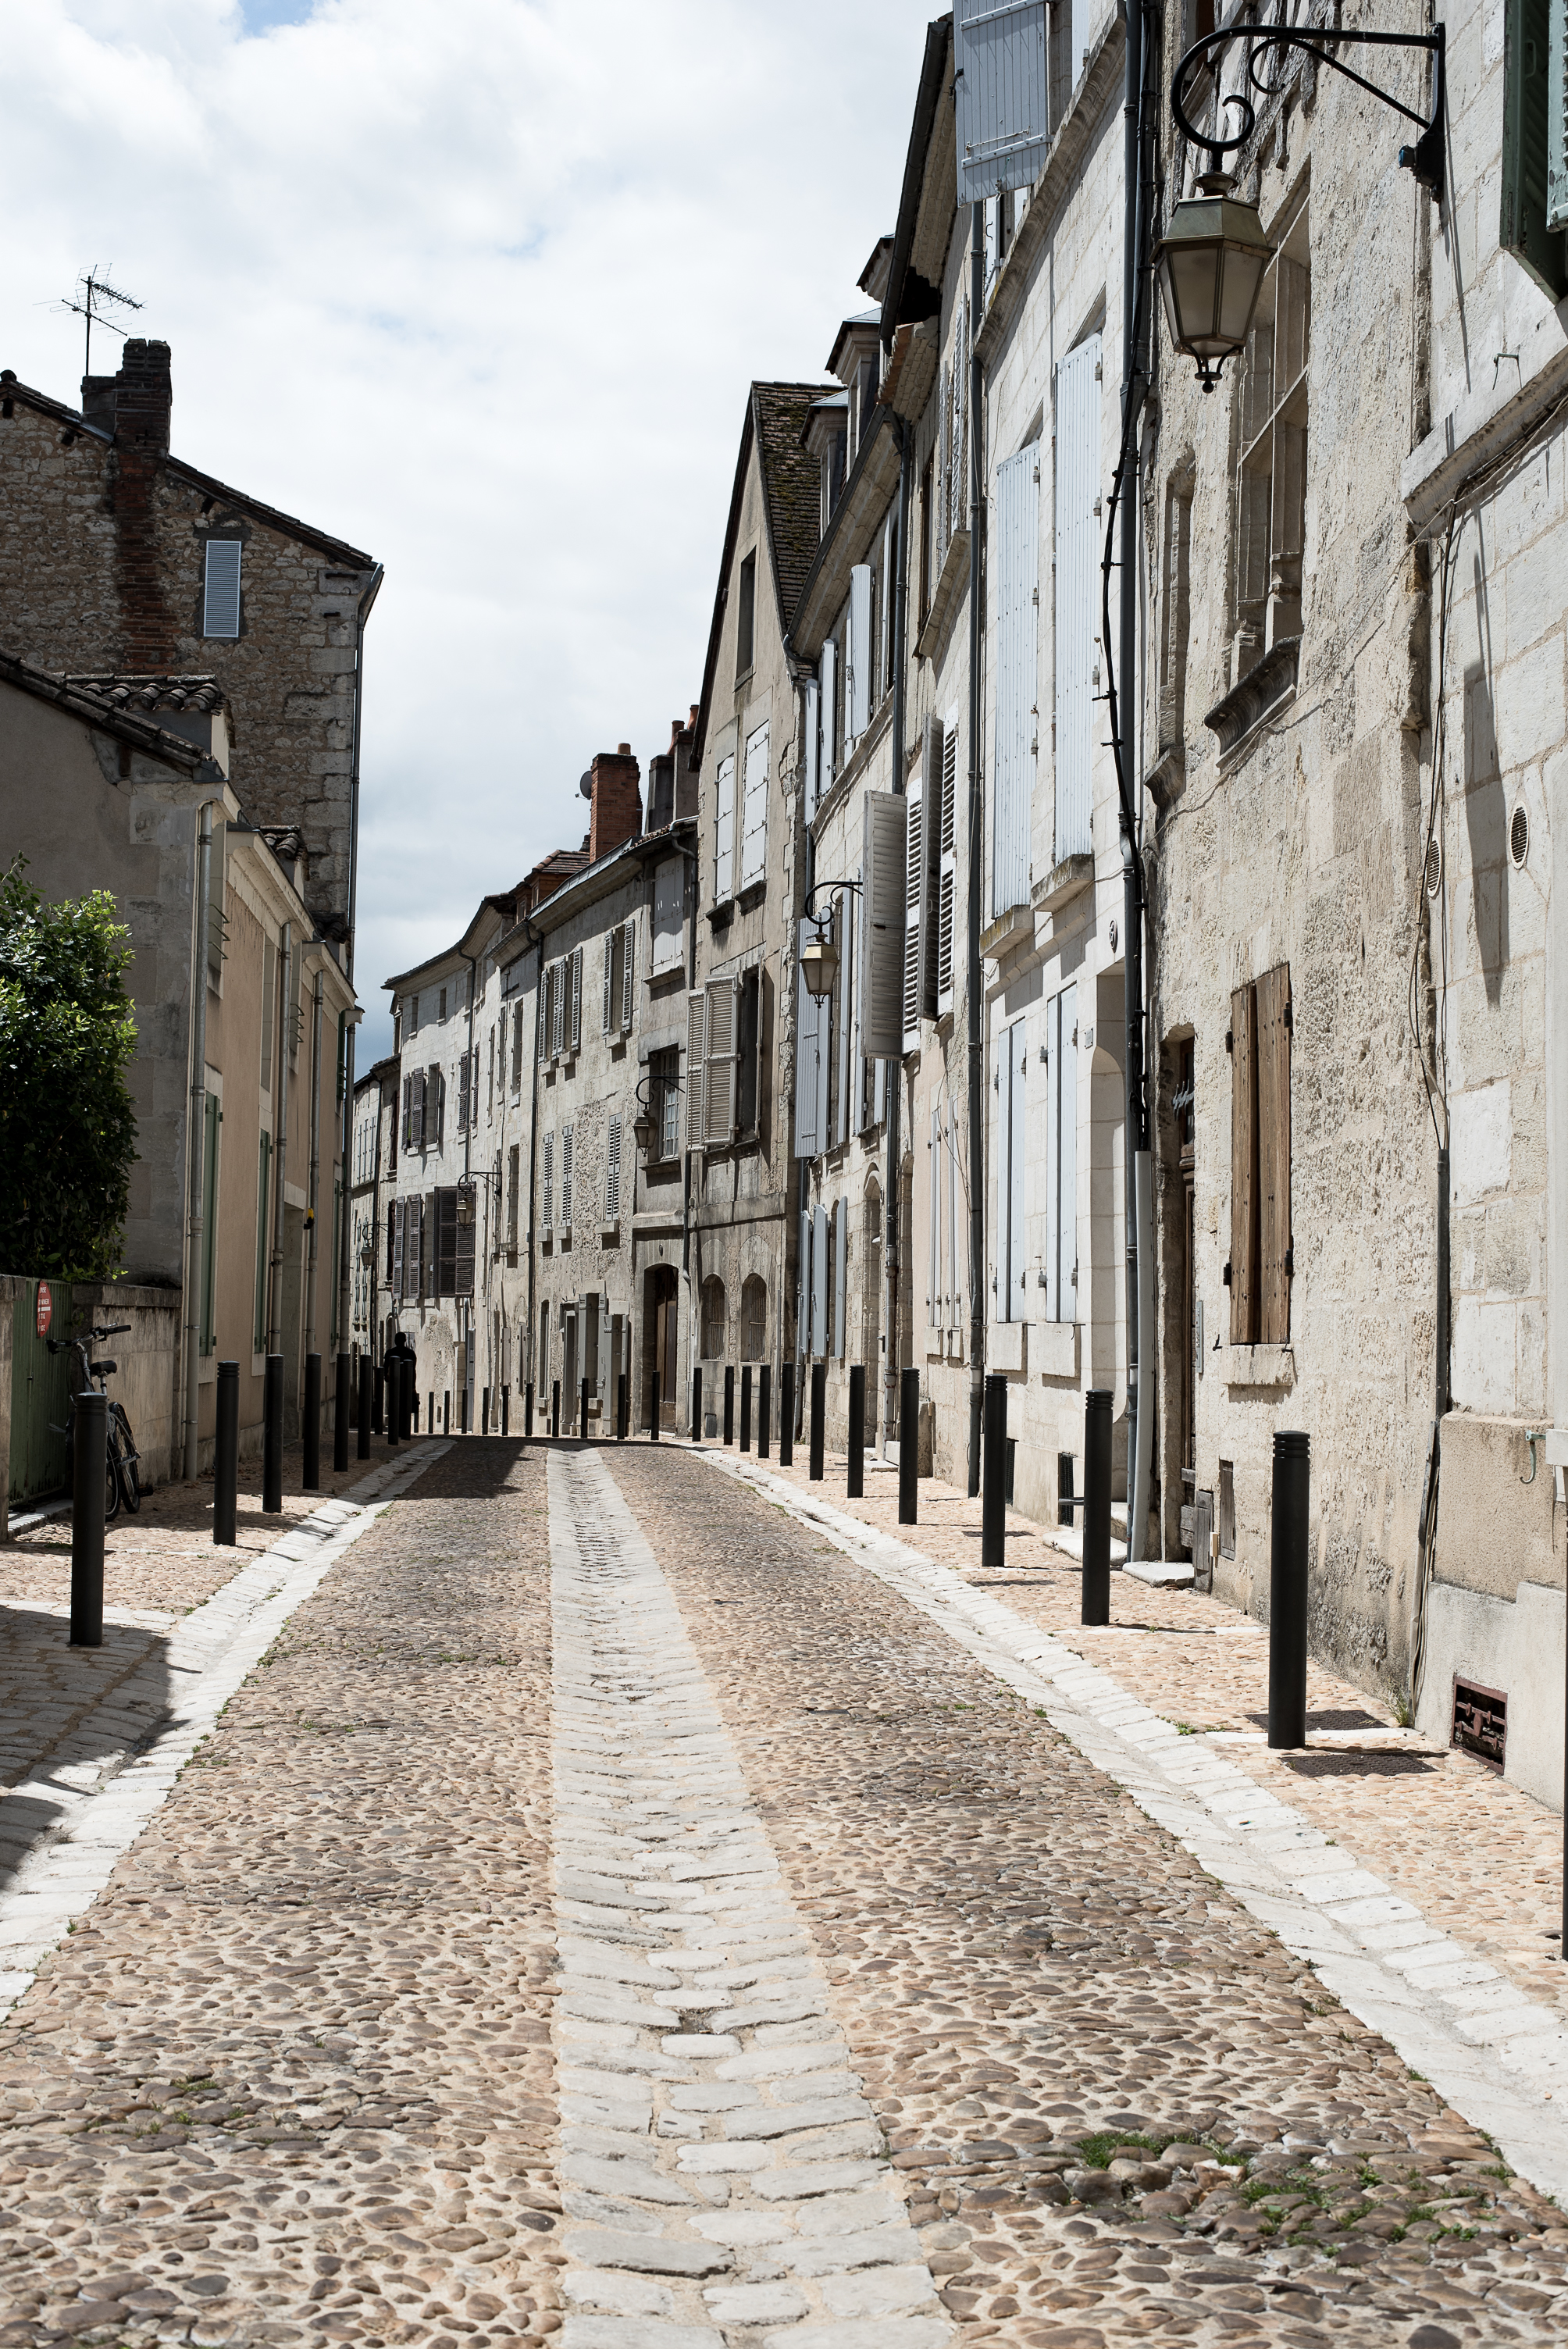 After the styling portion of our workshop we spent our final days visiting the surrounding towns of the Chateau. We shopped the open-air market in Perigeux and walked the hills of Saint-Émilion - both of which are UNESCO world heritage sites.